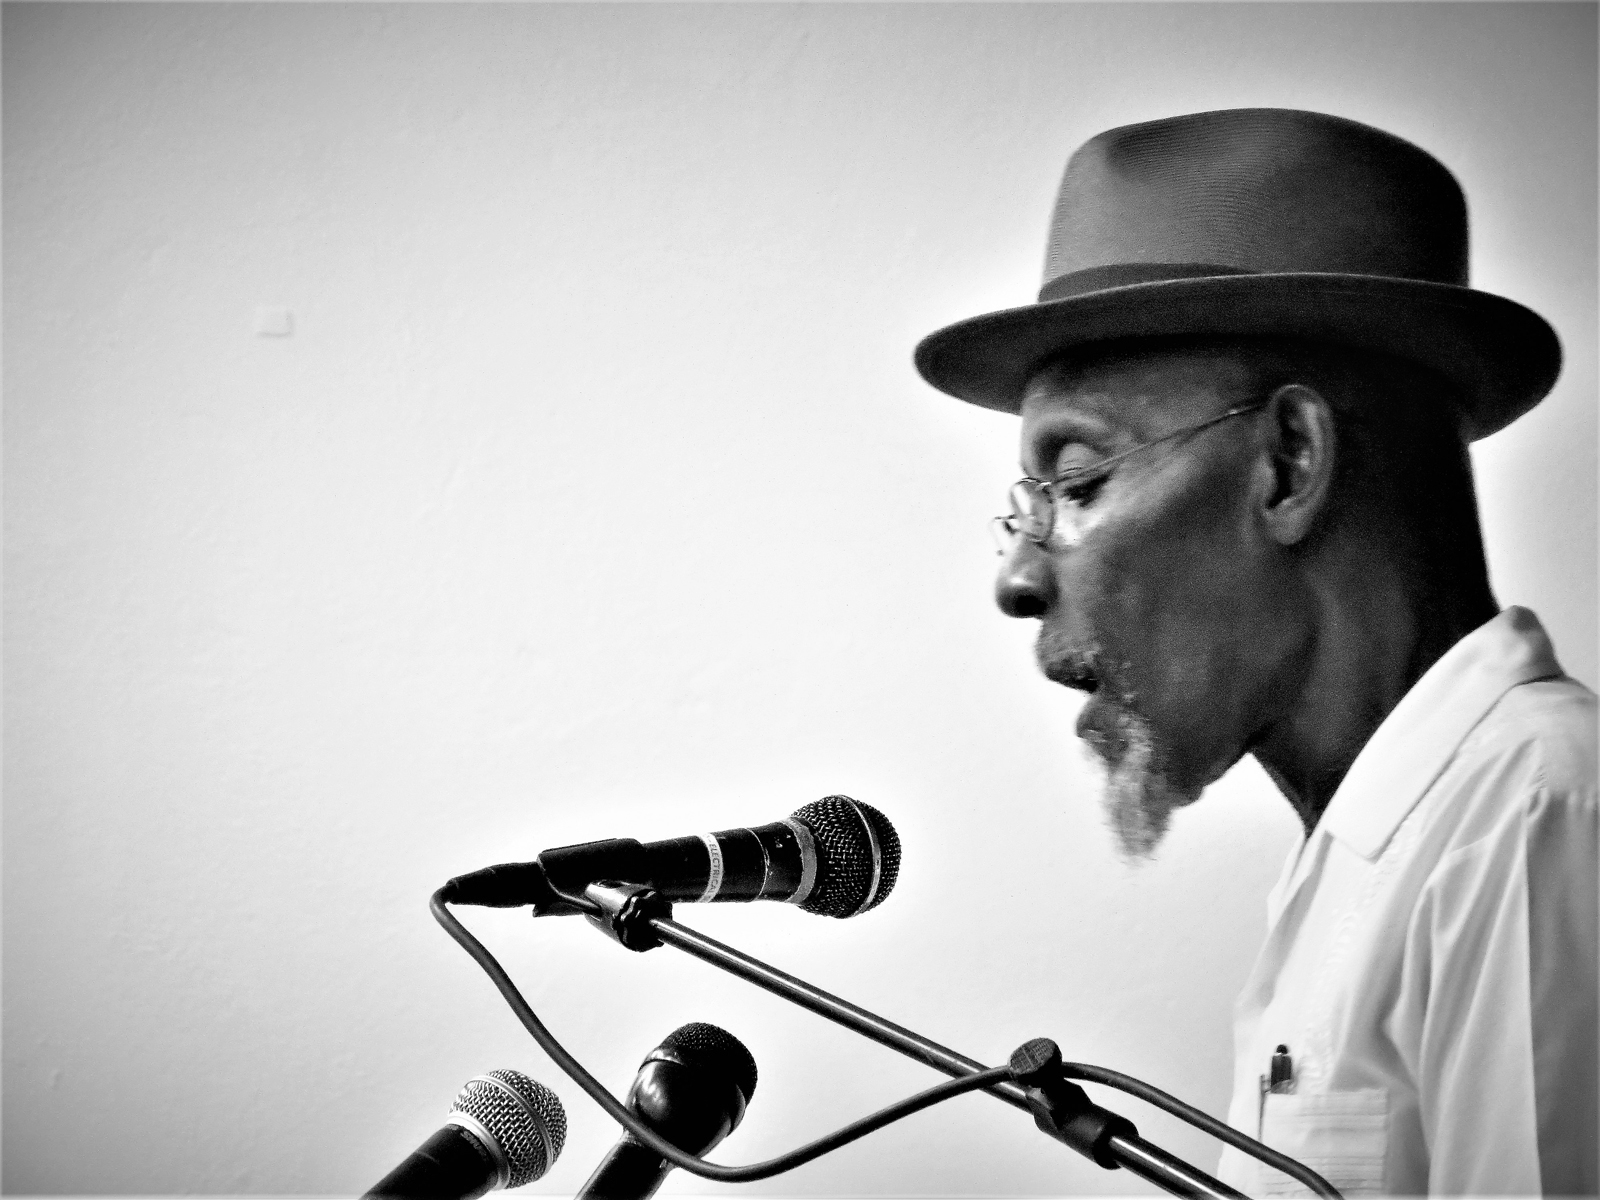 Revisit The Independent's portrait of dub poet Linton Kwesi Johnson